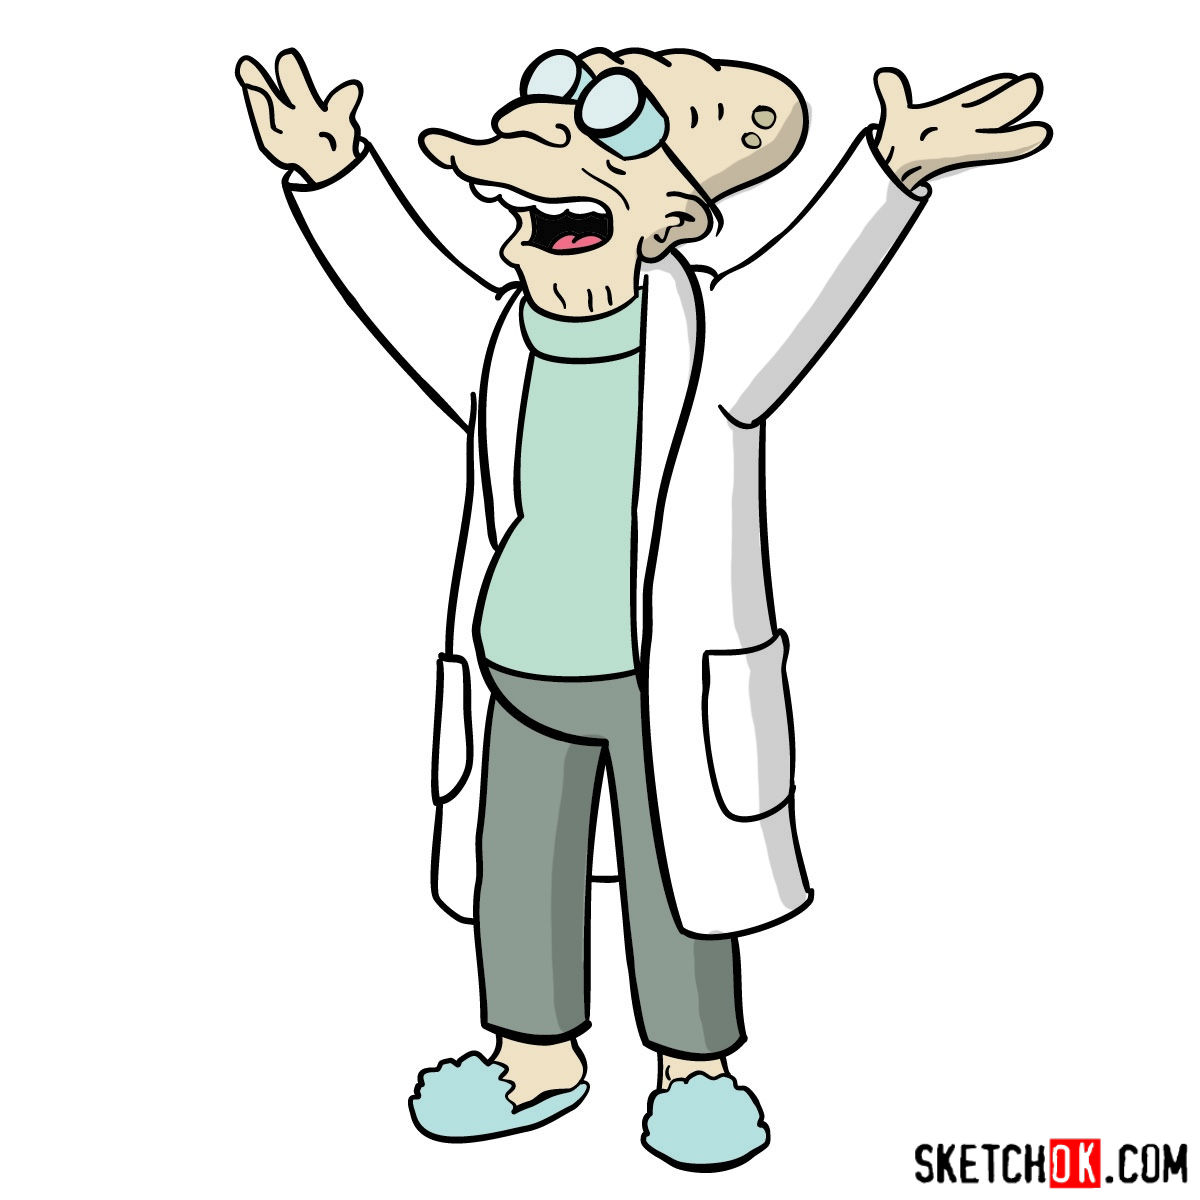 How to draw Professor Farnsworth